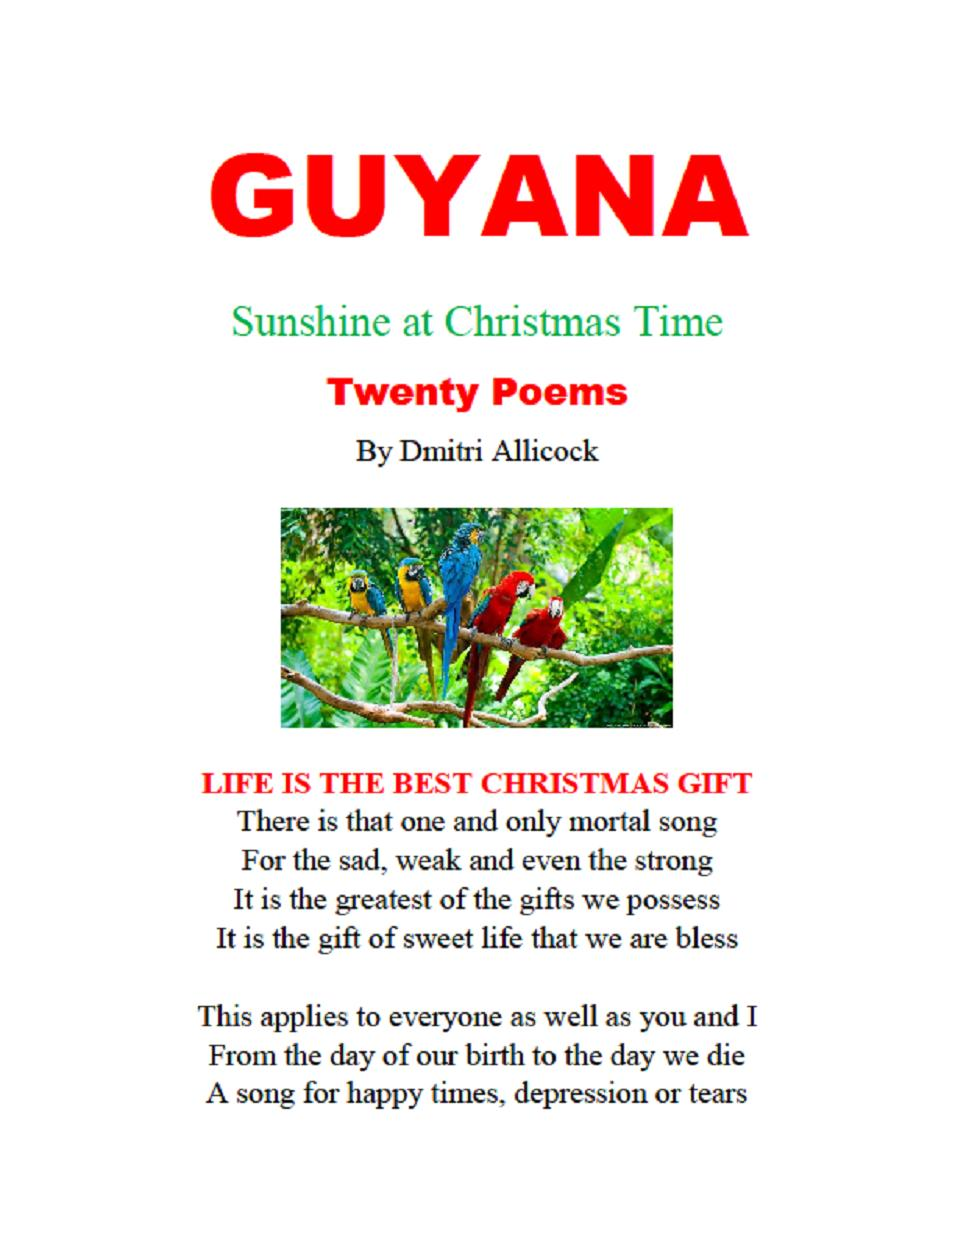 Poems About Christmas Time.Guyana Sunshine At Christmas Time 20 Poems By Dmitri